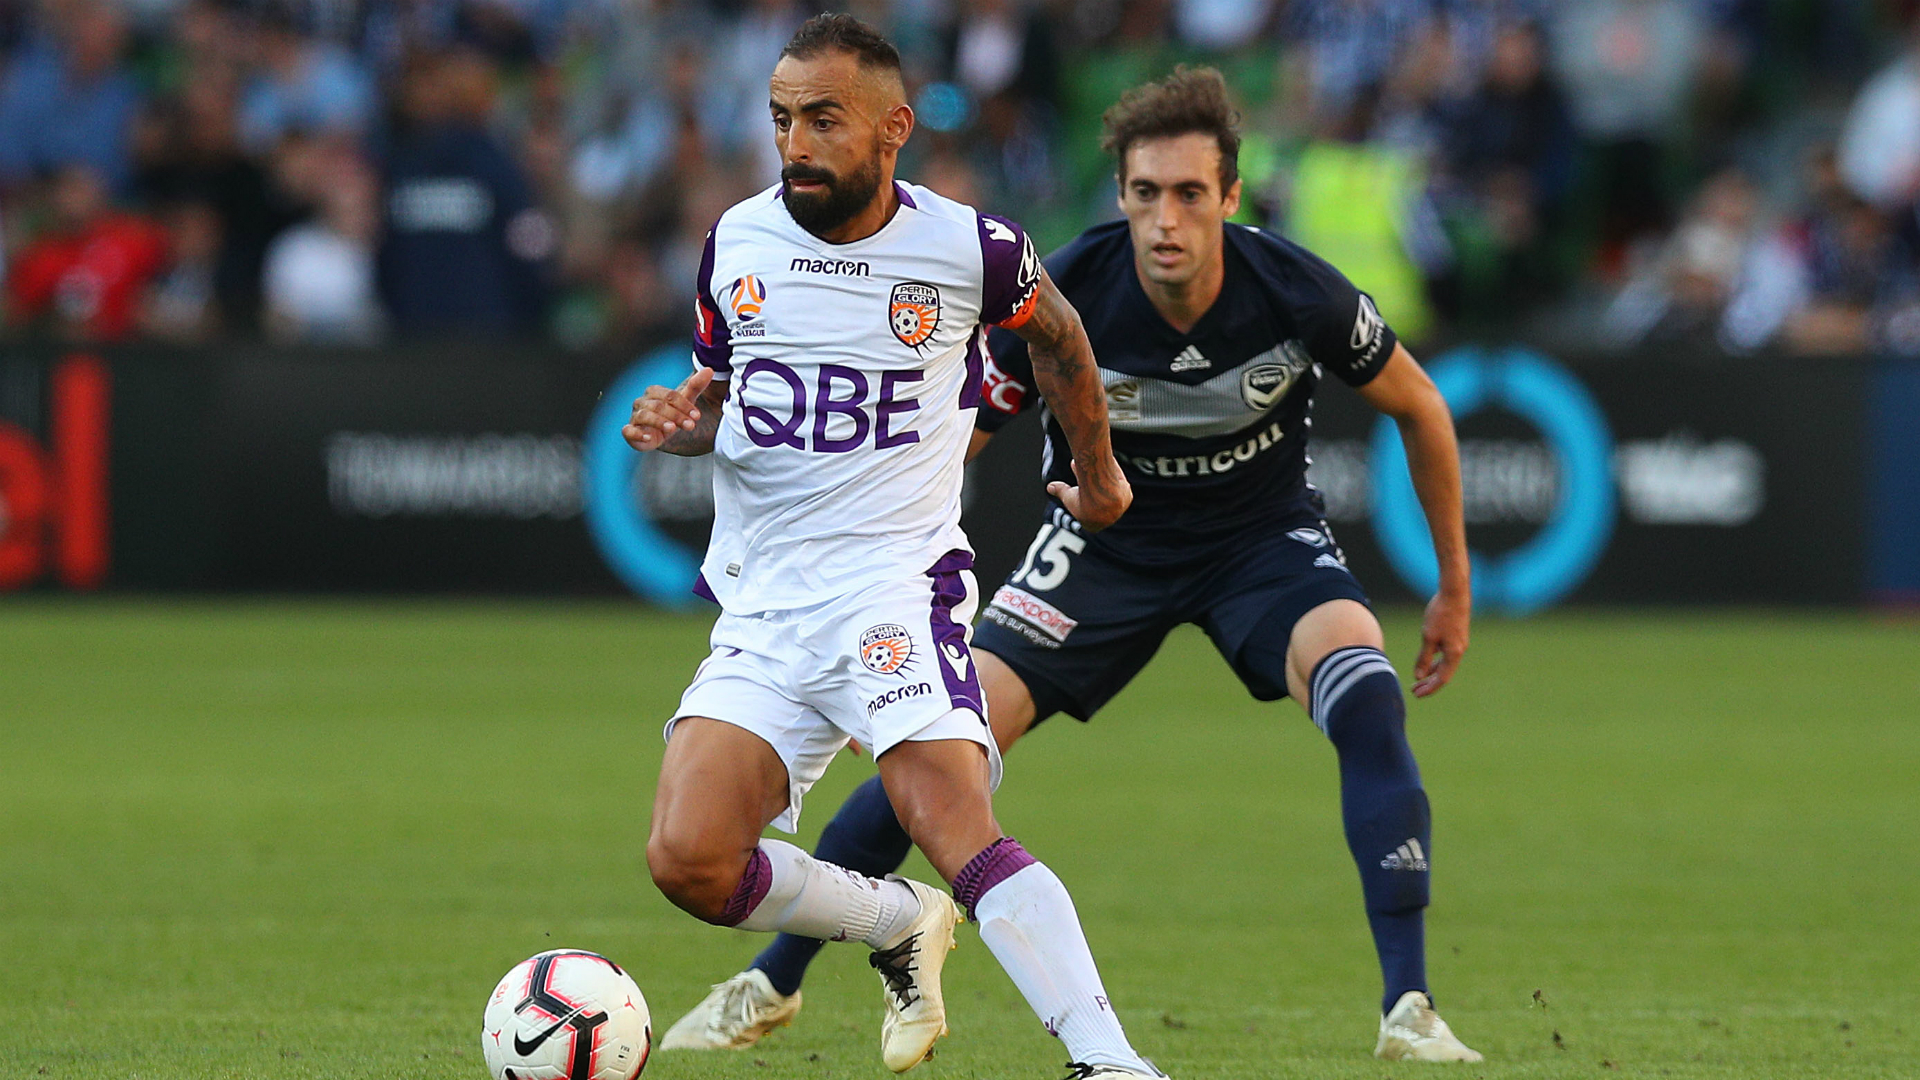 Melbourne Victory 1 Perth Glory 2: Castro fires leaders